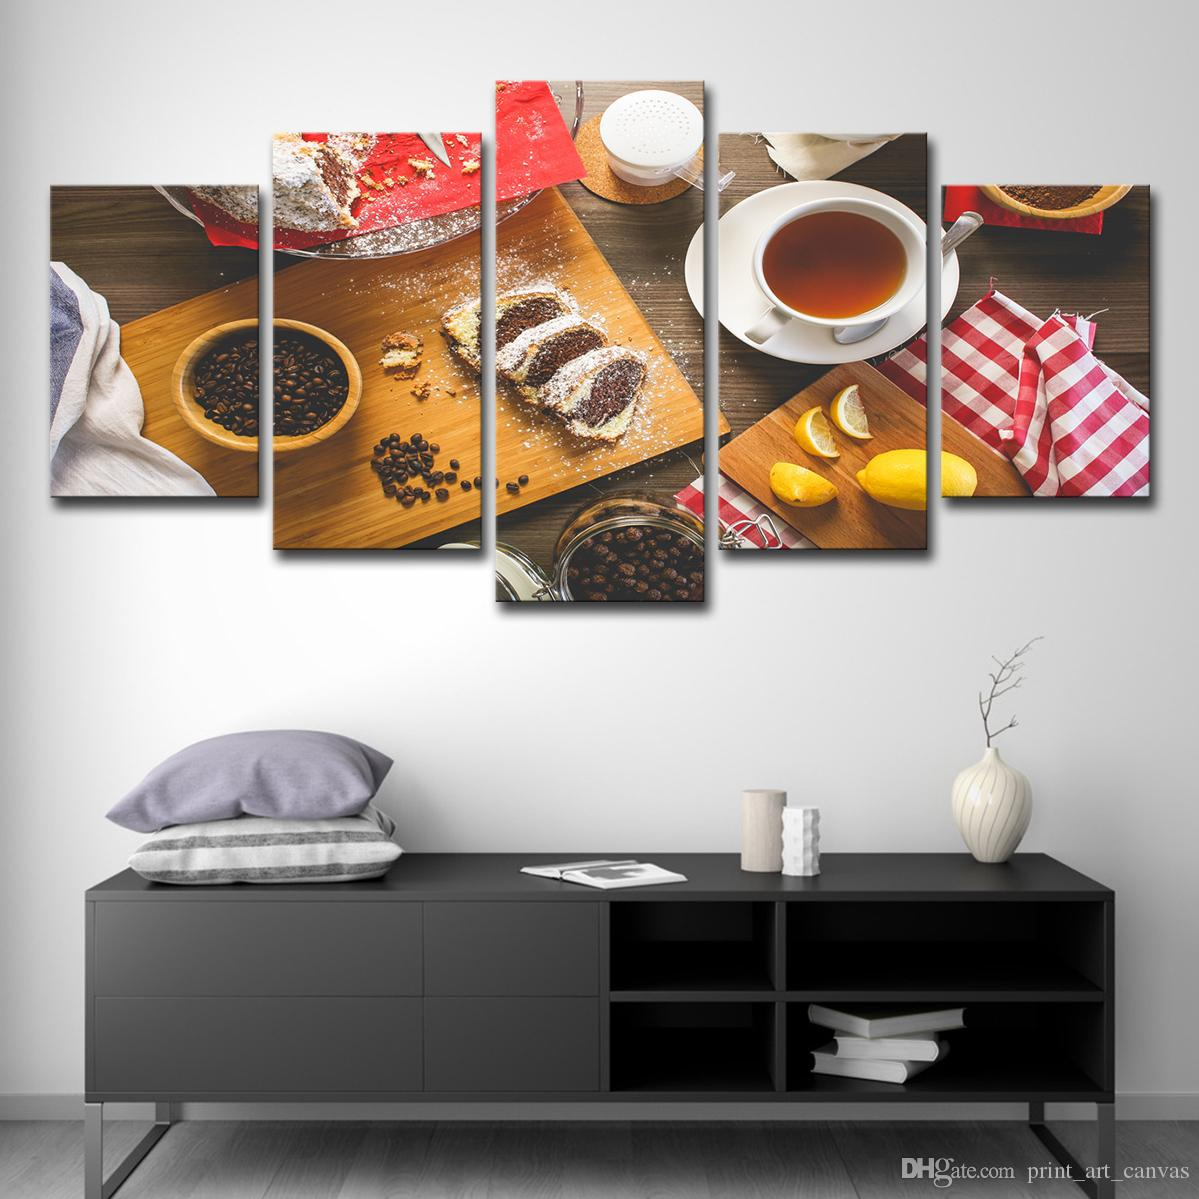 2019 Canvas Pictures Kitchen Wall Art Home Decor Restaurant Fruits Foods  Coffee Cake Painting Modern HD Printed Poster From Print_art_canvas, $16.41  | ...